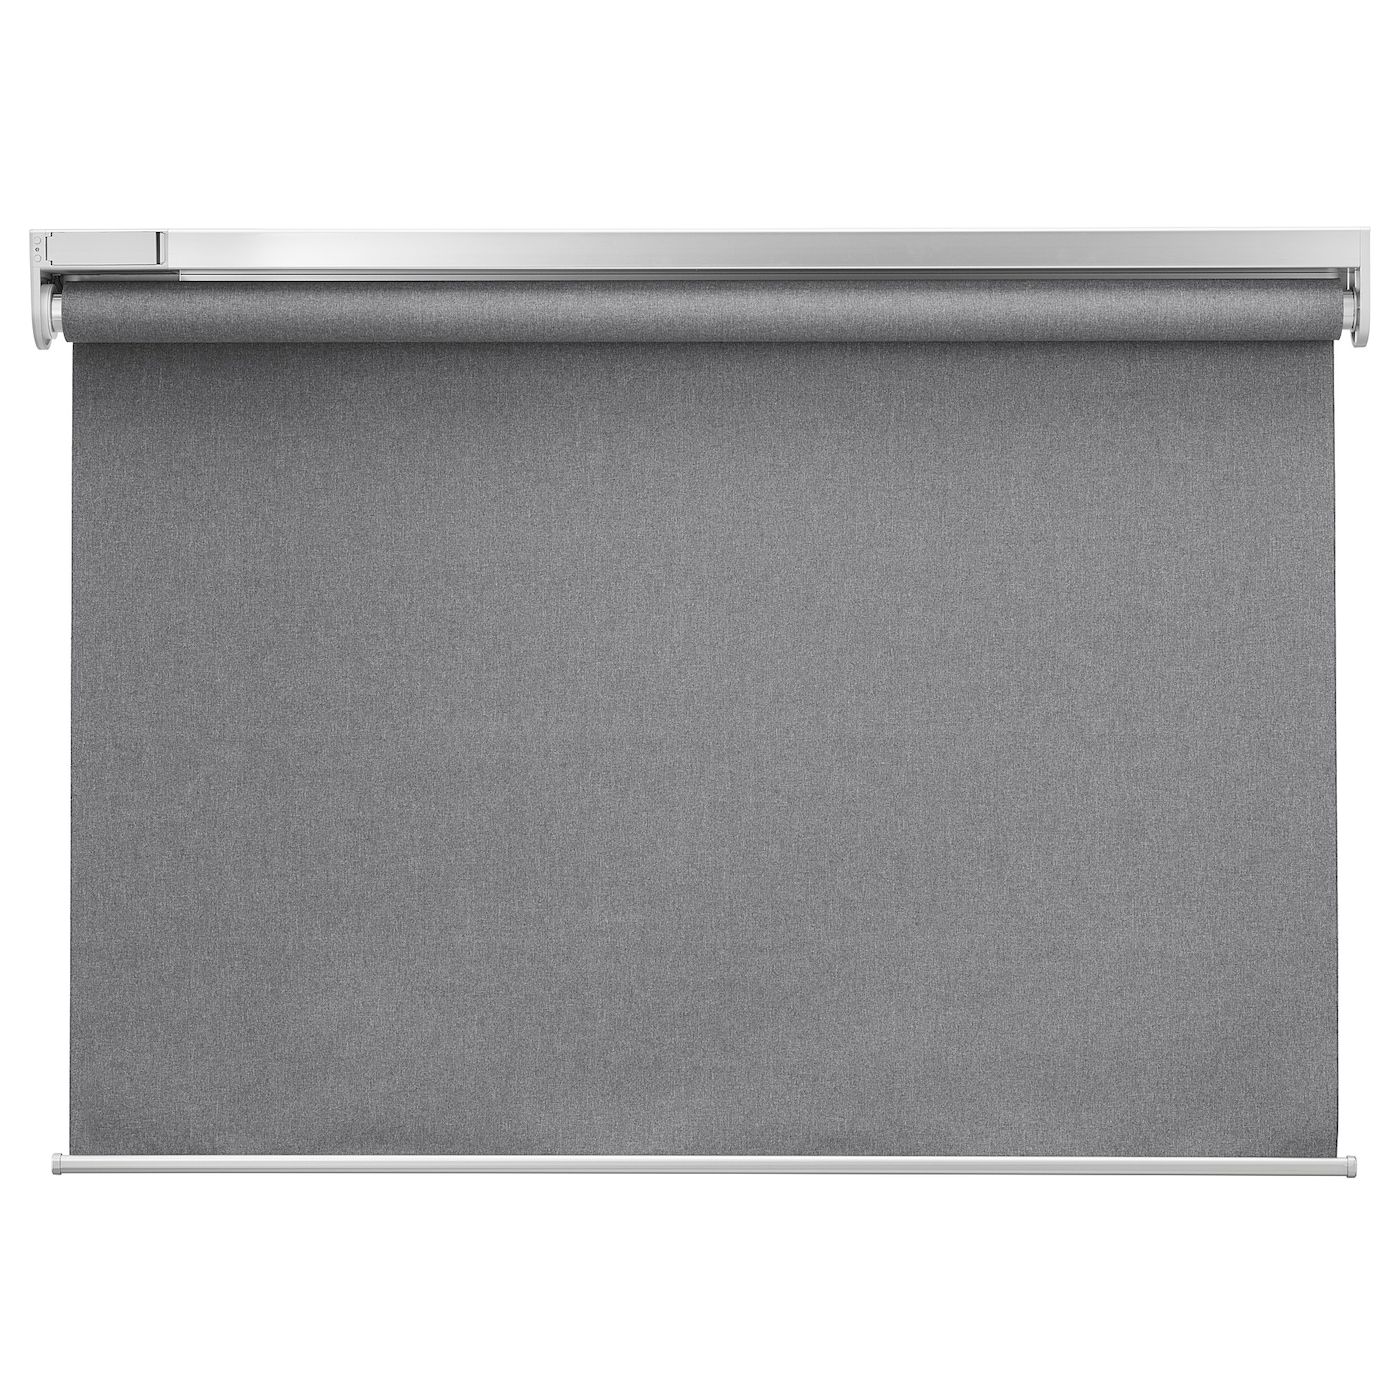 FYRTUR Block-out roller blind - wireless/battery-operated grey 4x4 cm